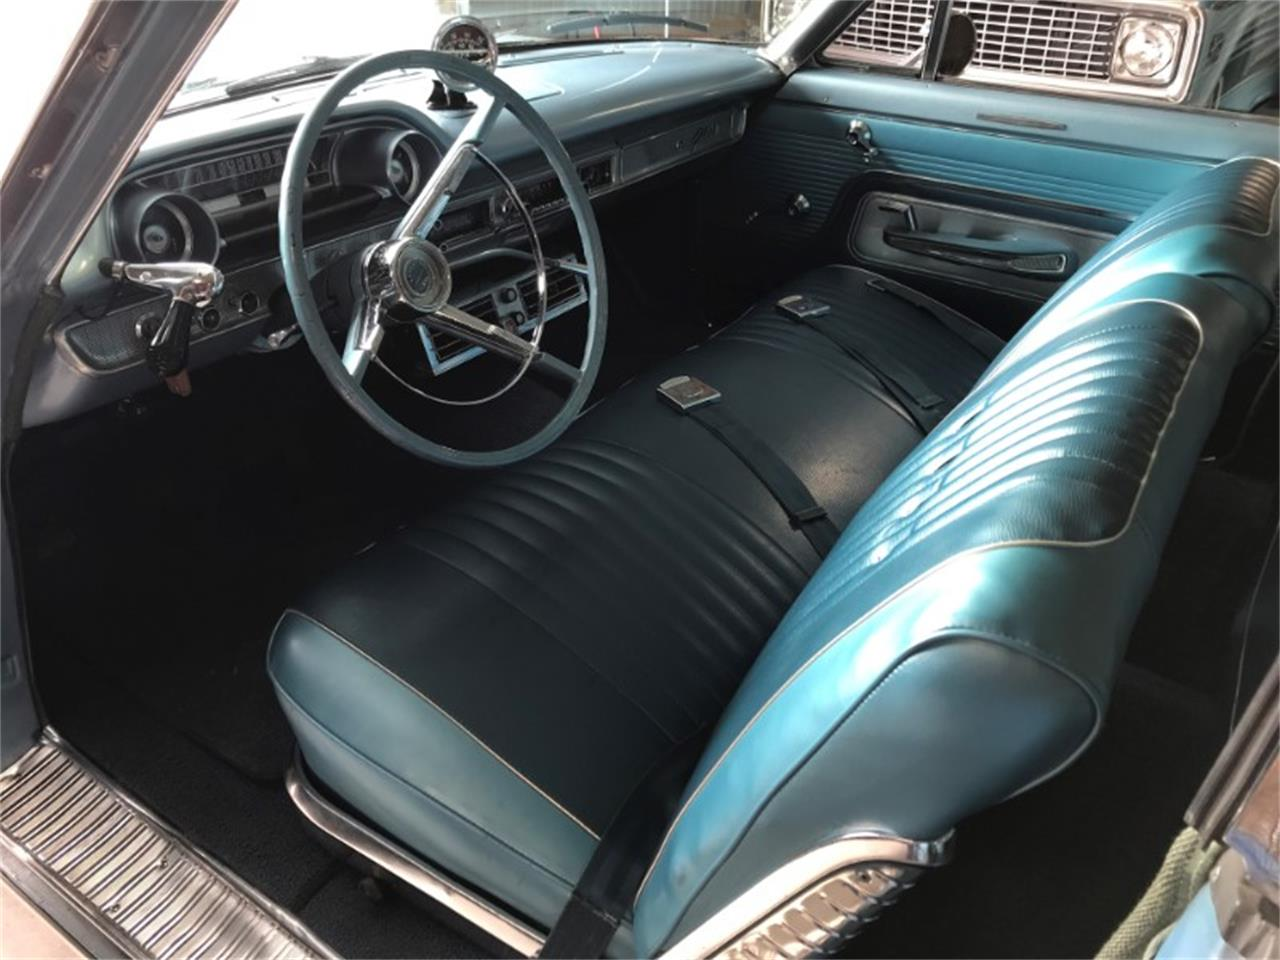 1963 Ford Galaxie 500 (CC-1200307) for sale in Harpers Ferry, West Virginia